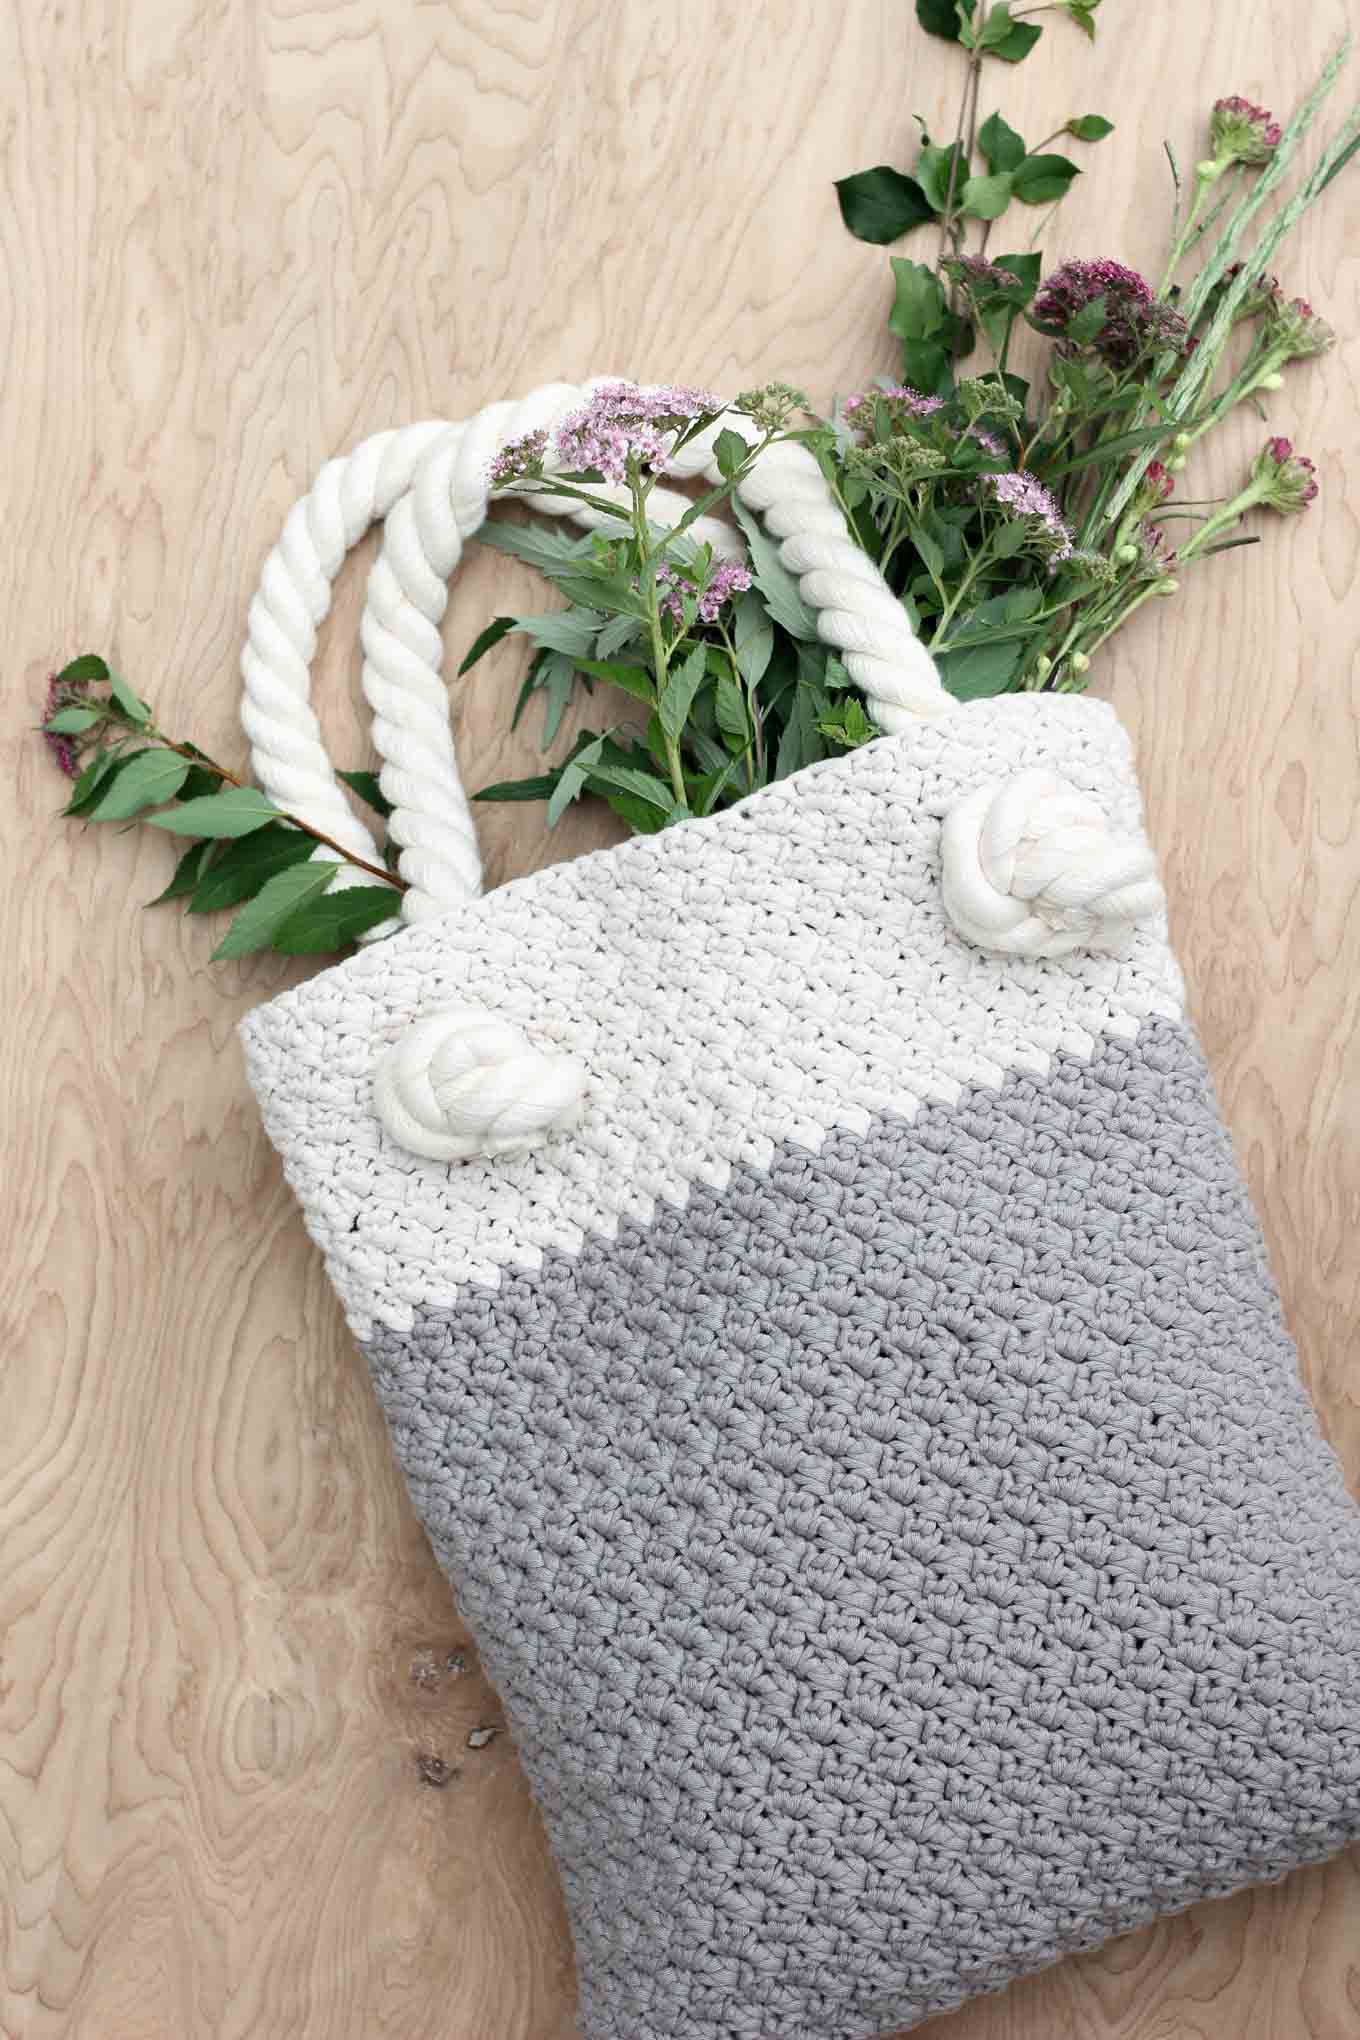 Crochet Easy Beginner Patterns : Easy + Modern Free Crochet Bag Pattern for Beginners